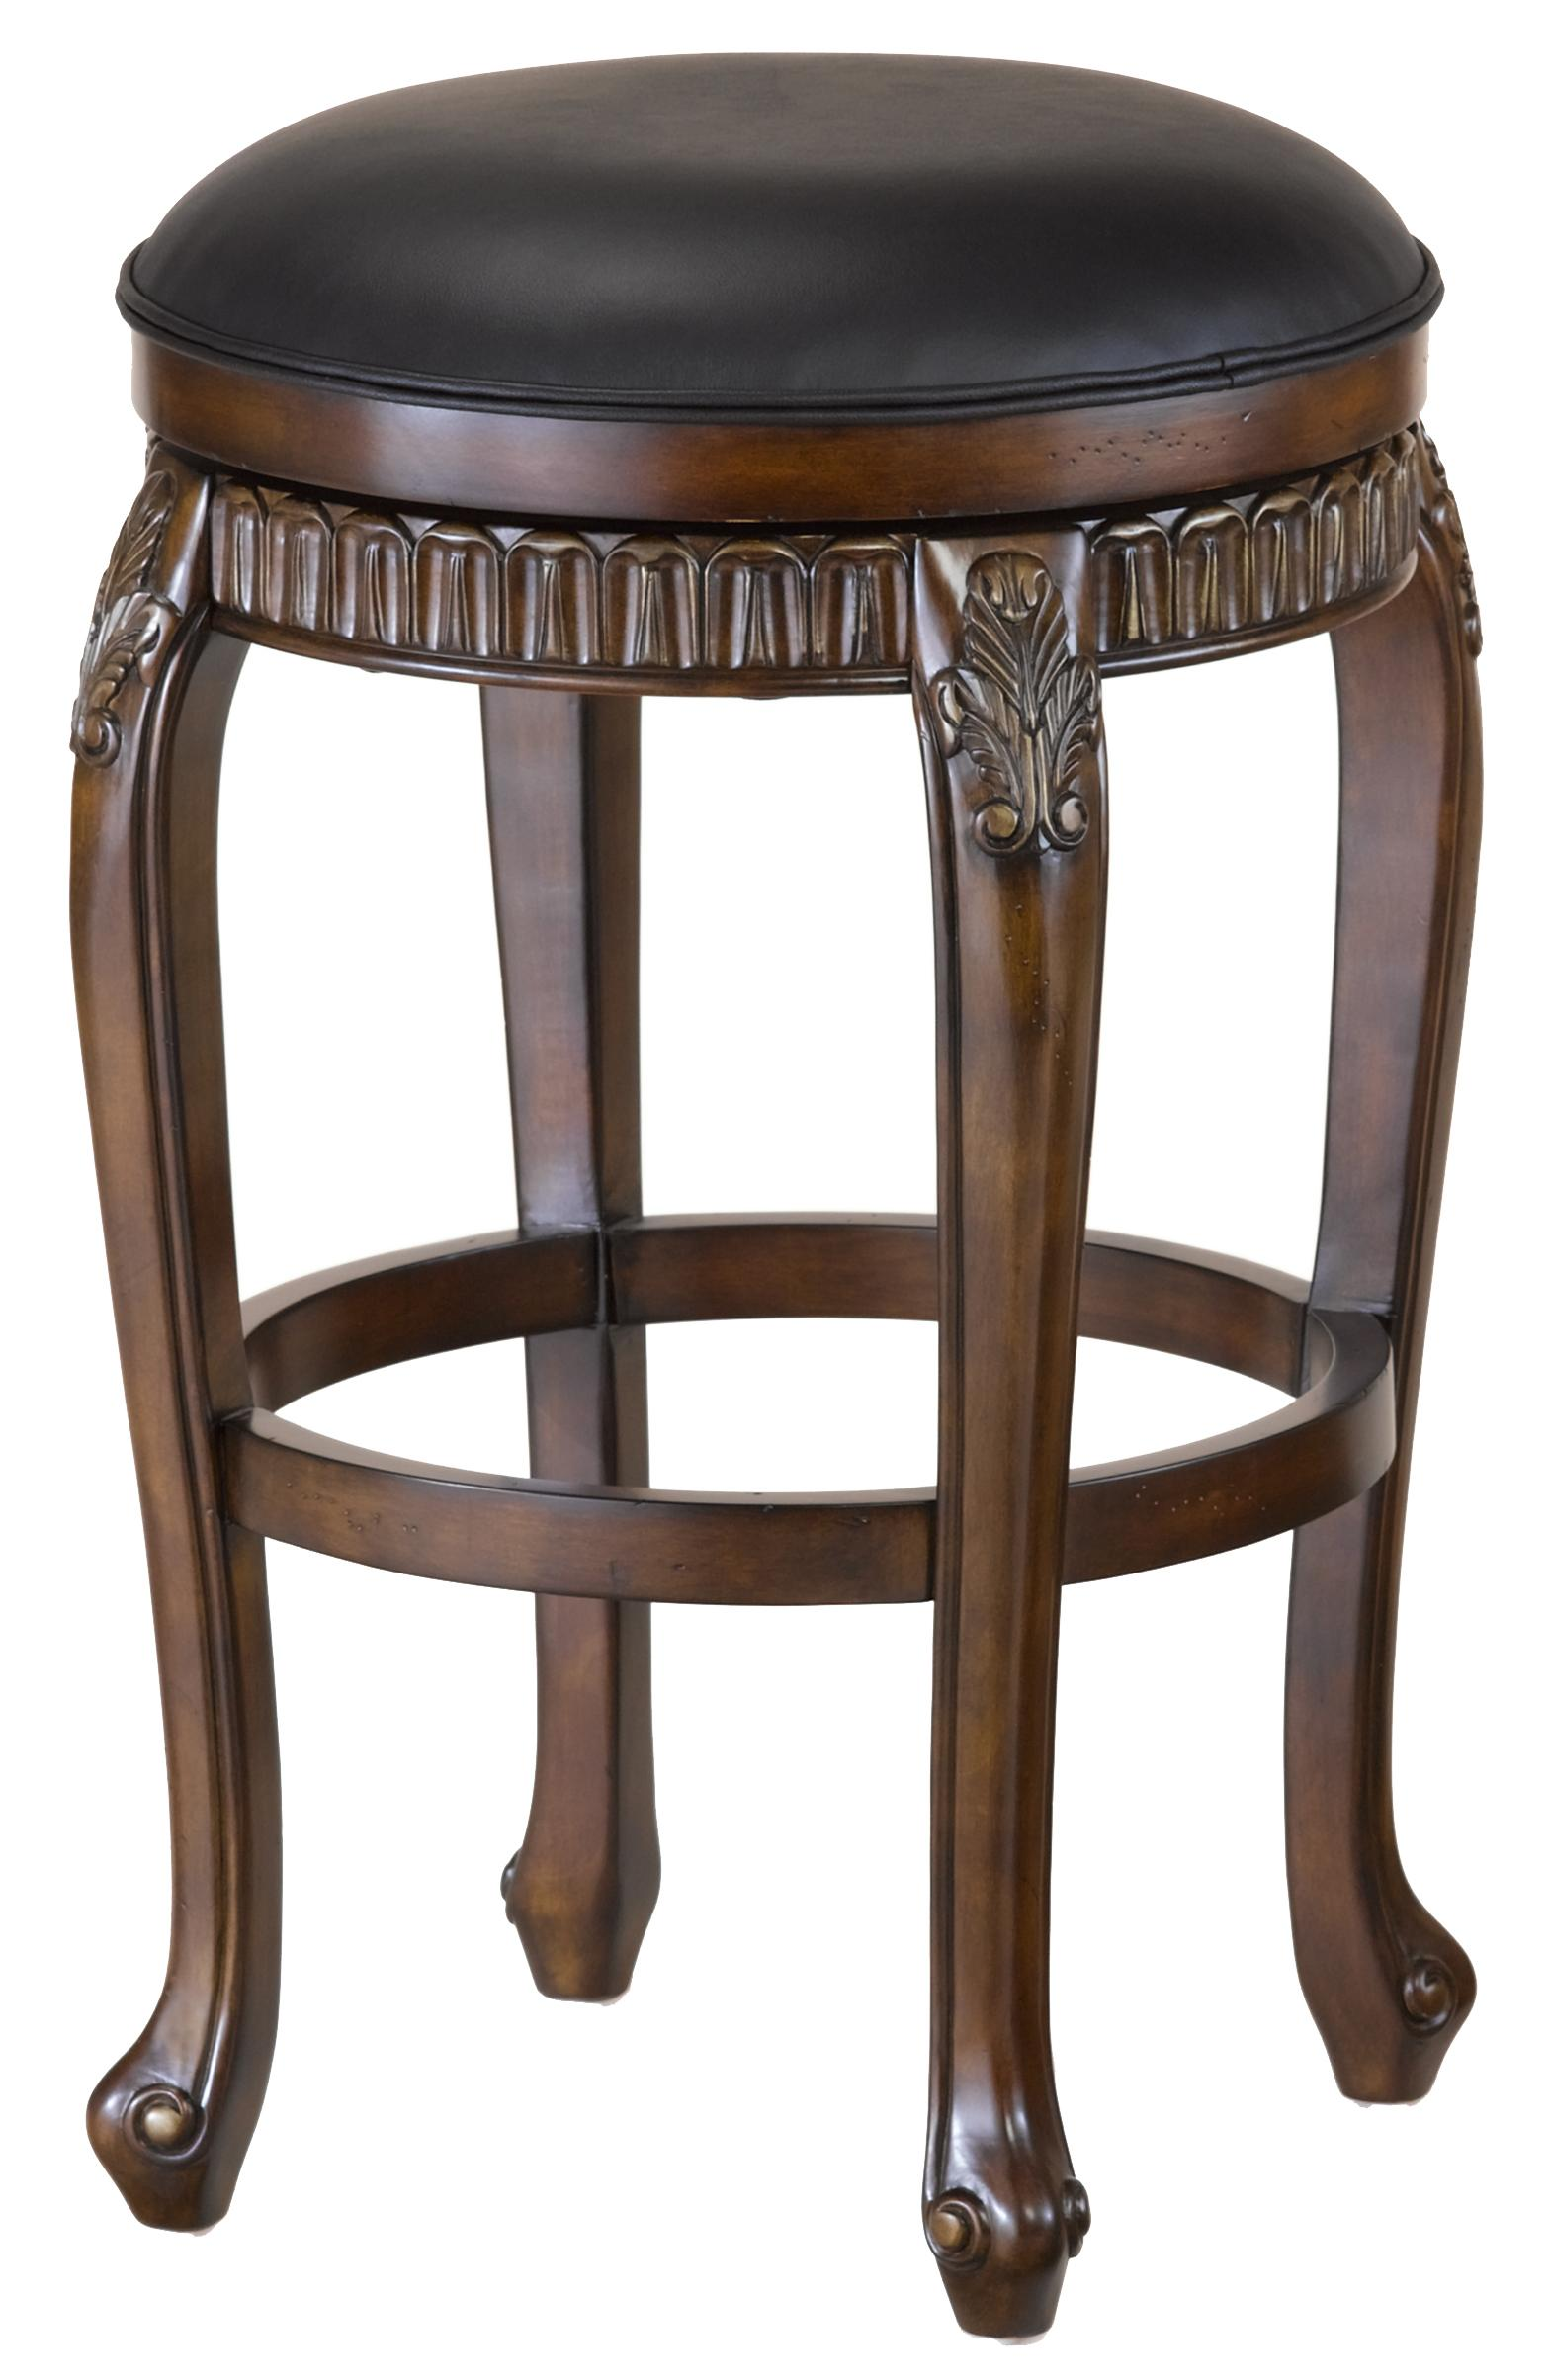 "Hillsdale Wood Stools 24"" Counter Height Fleur De Lis Stool - Item Number: 62993"